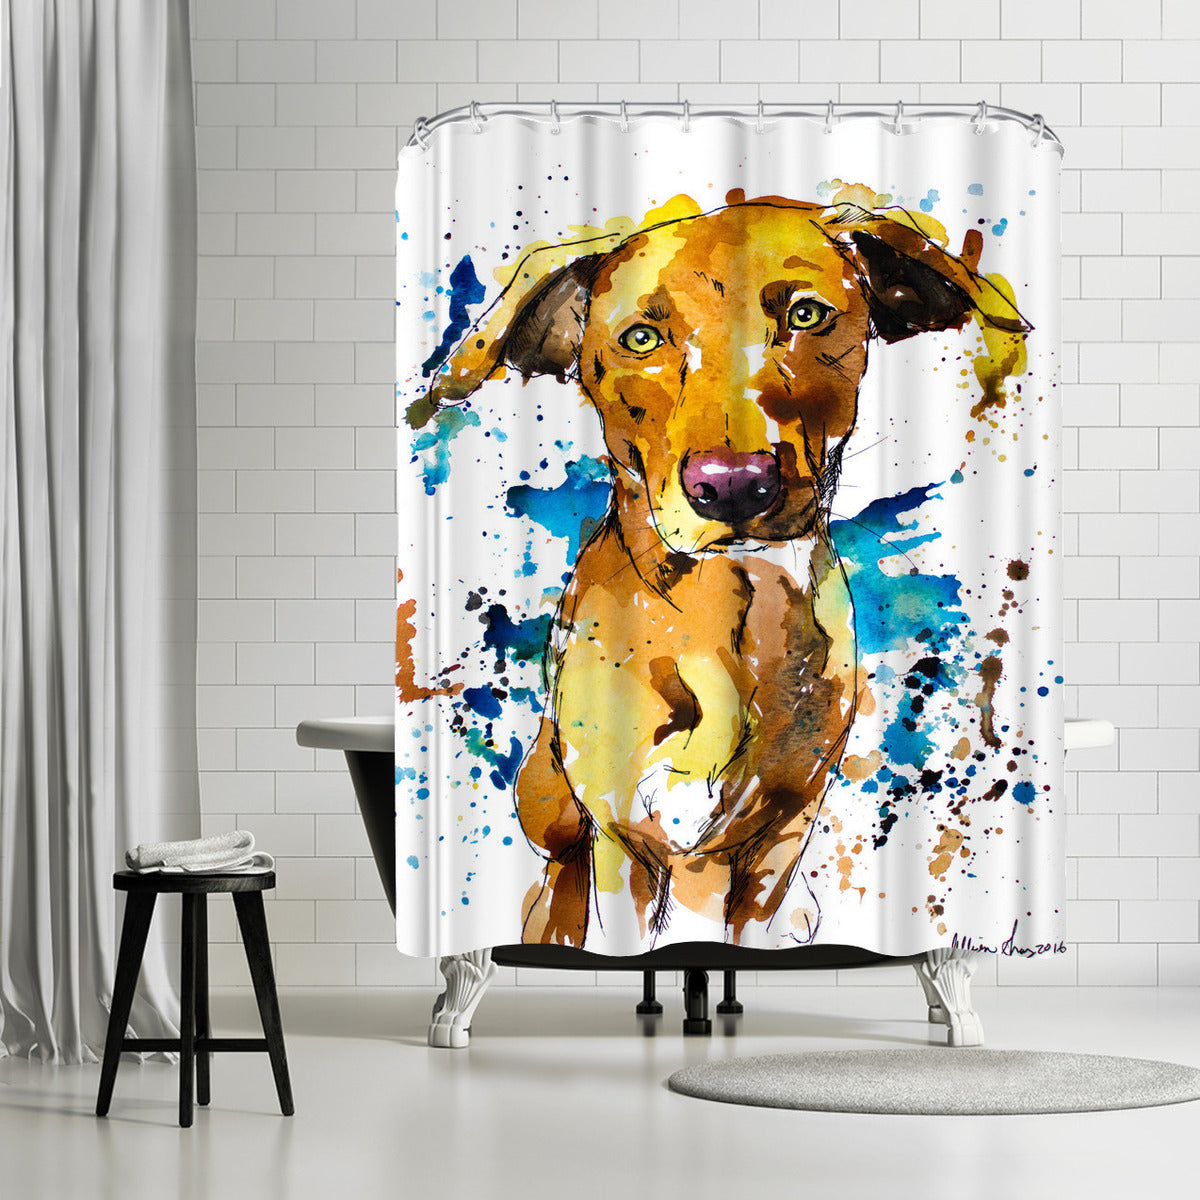 Oakley by Allison Gray Shower Curtain